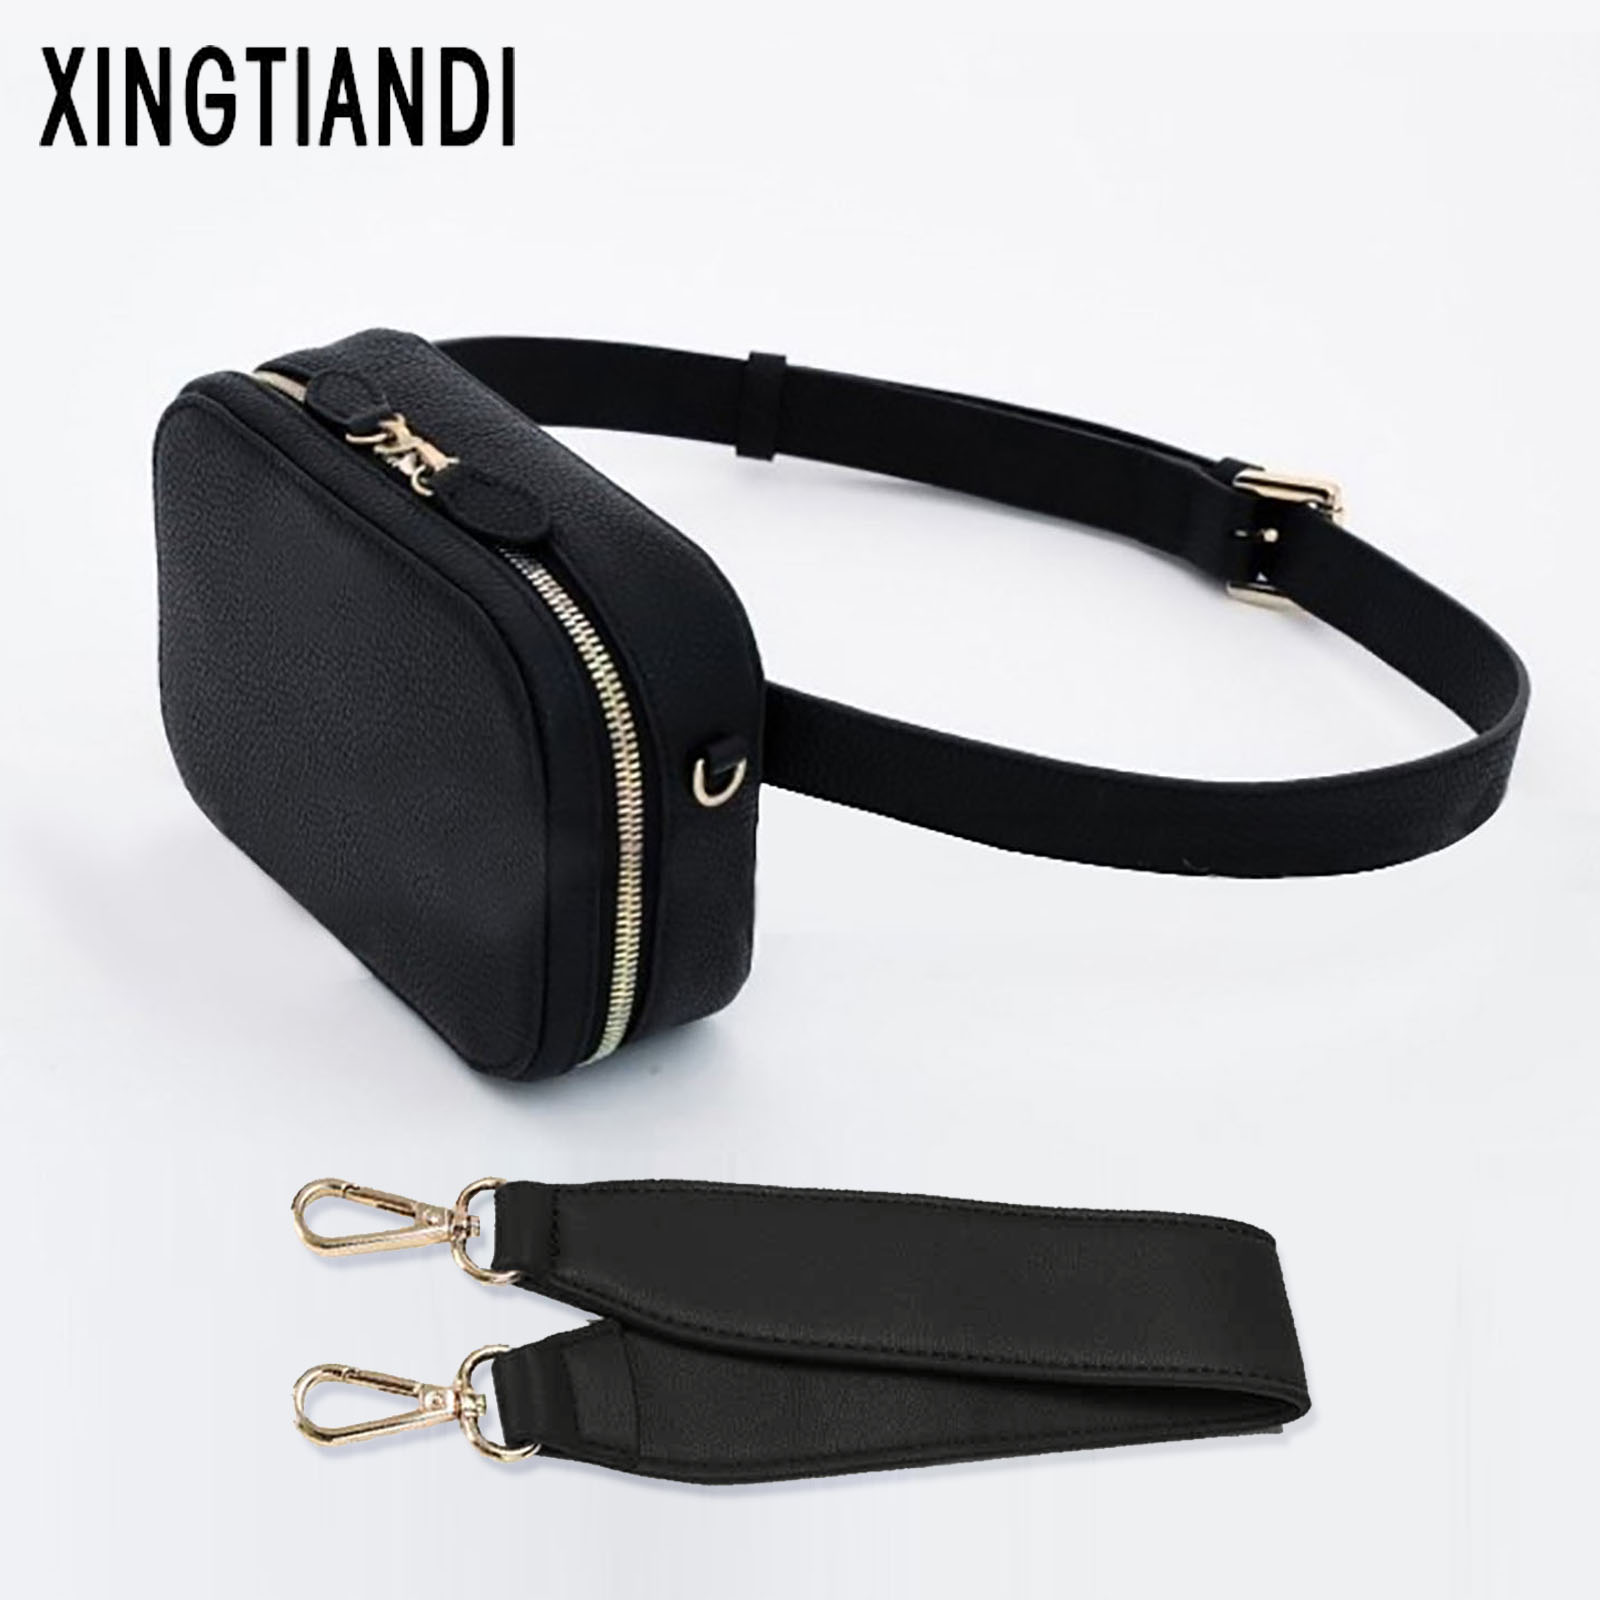 New Women Pu Leather Waist Bag Chest Handbag Round Belt Bag Korean Fashion Style